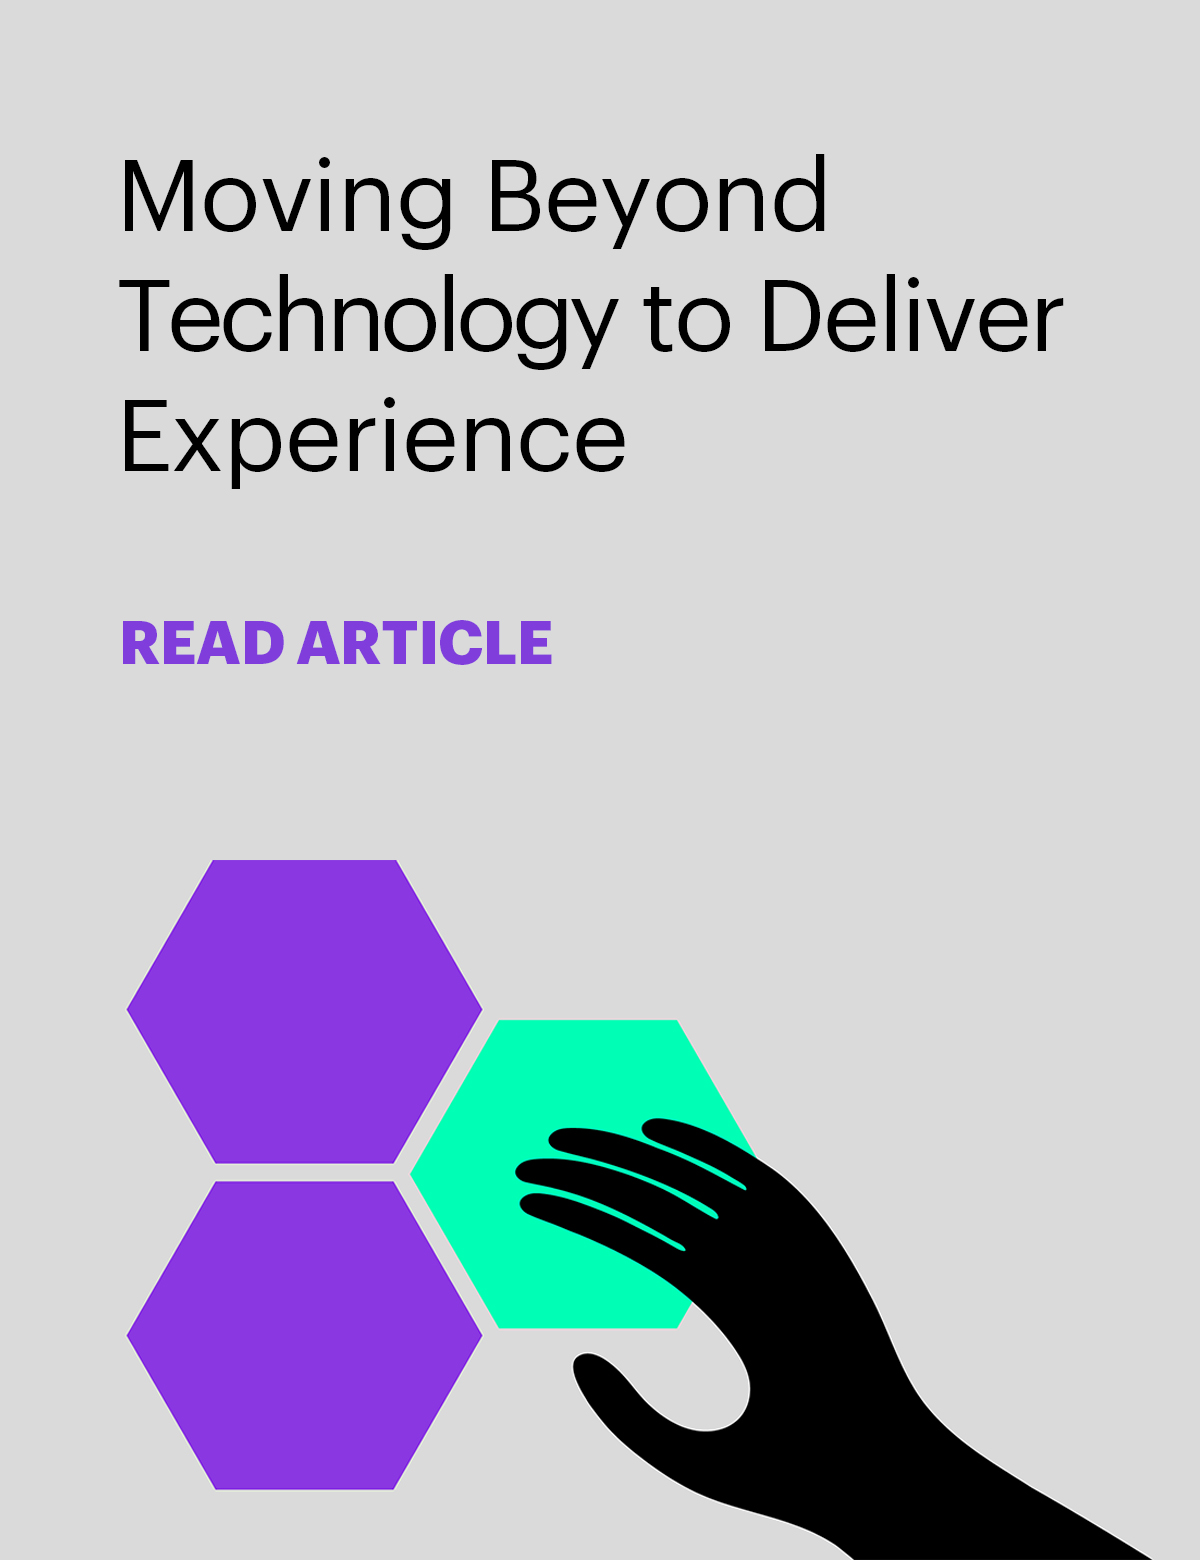 Moving beyond technology to deliver relevance and experience